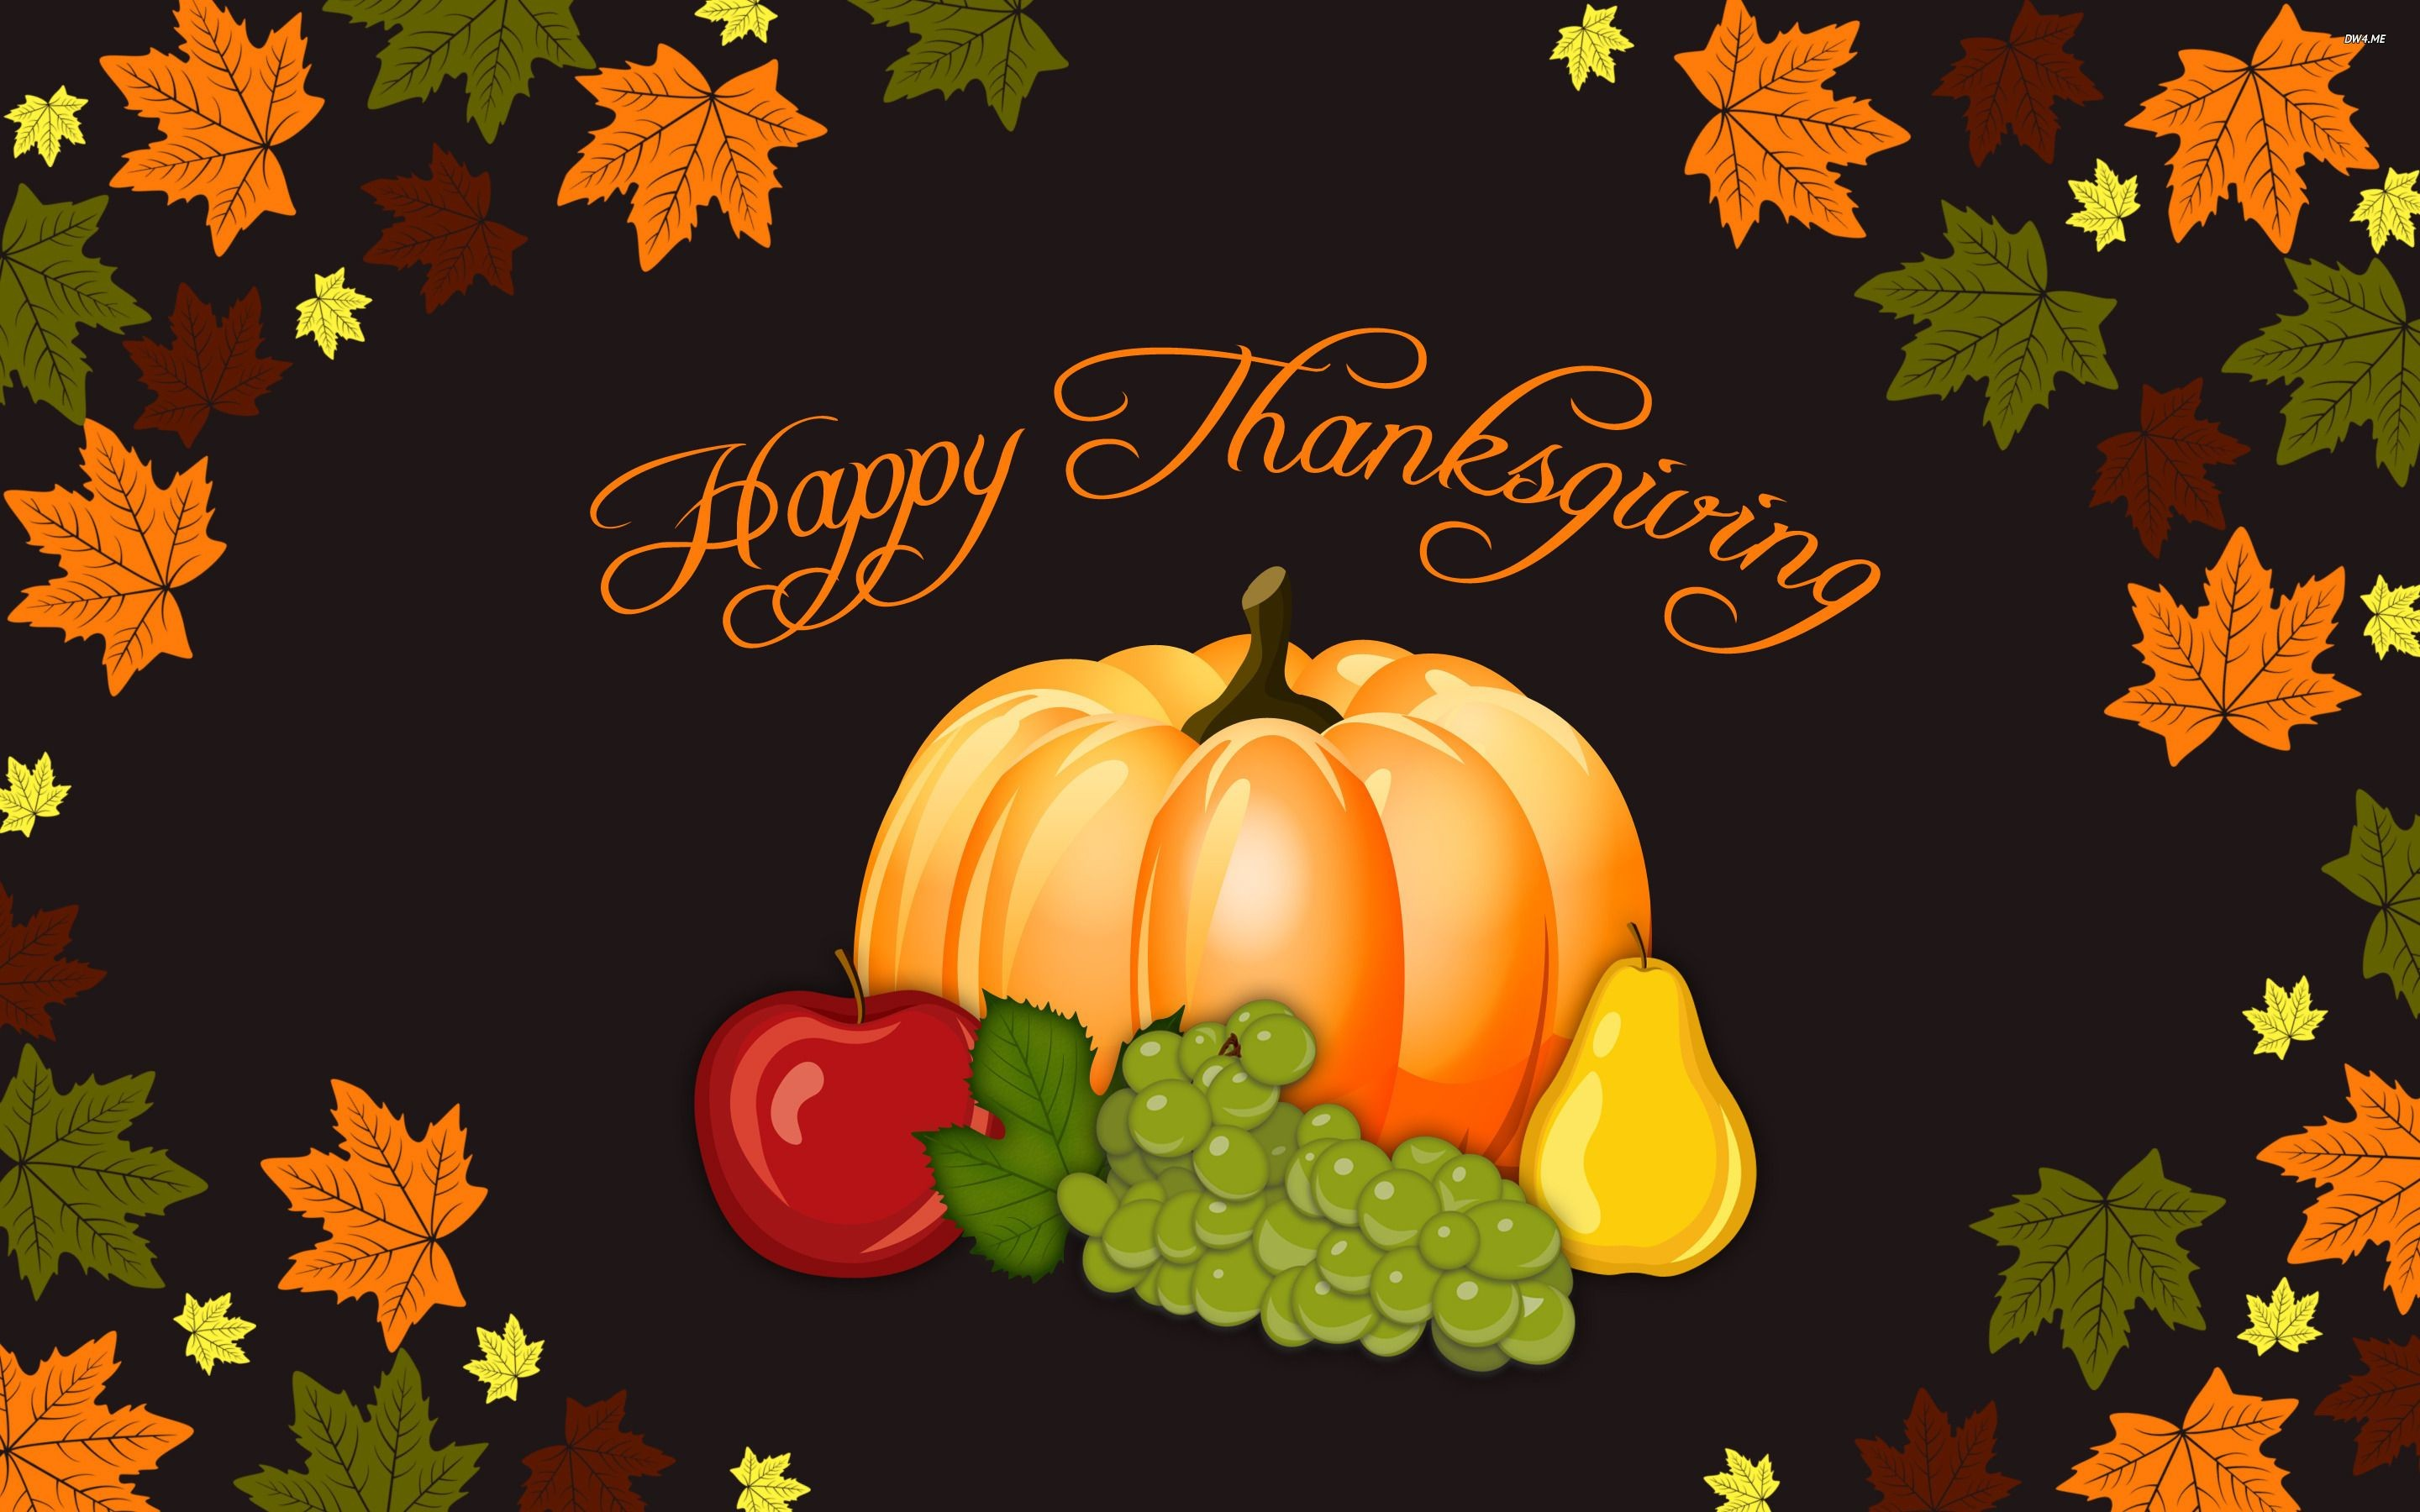 Download the Best Thanksgiving Wallpapers 2015 for Mobile, Mac and PC